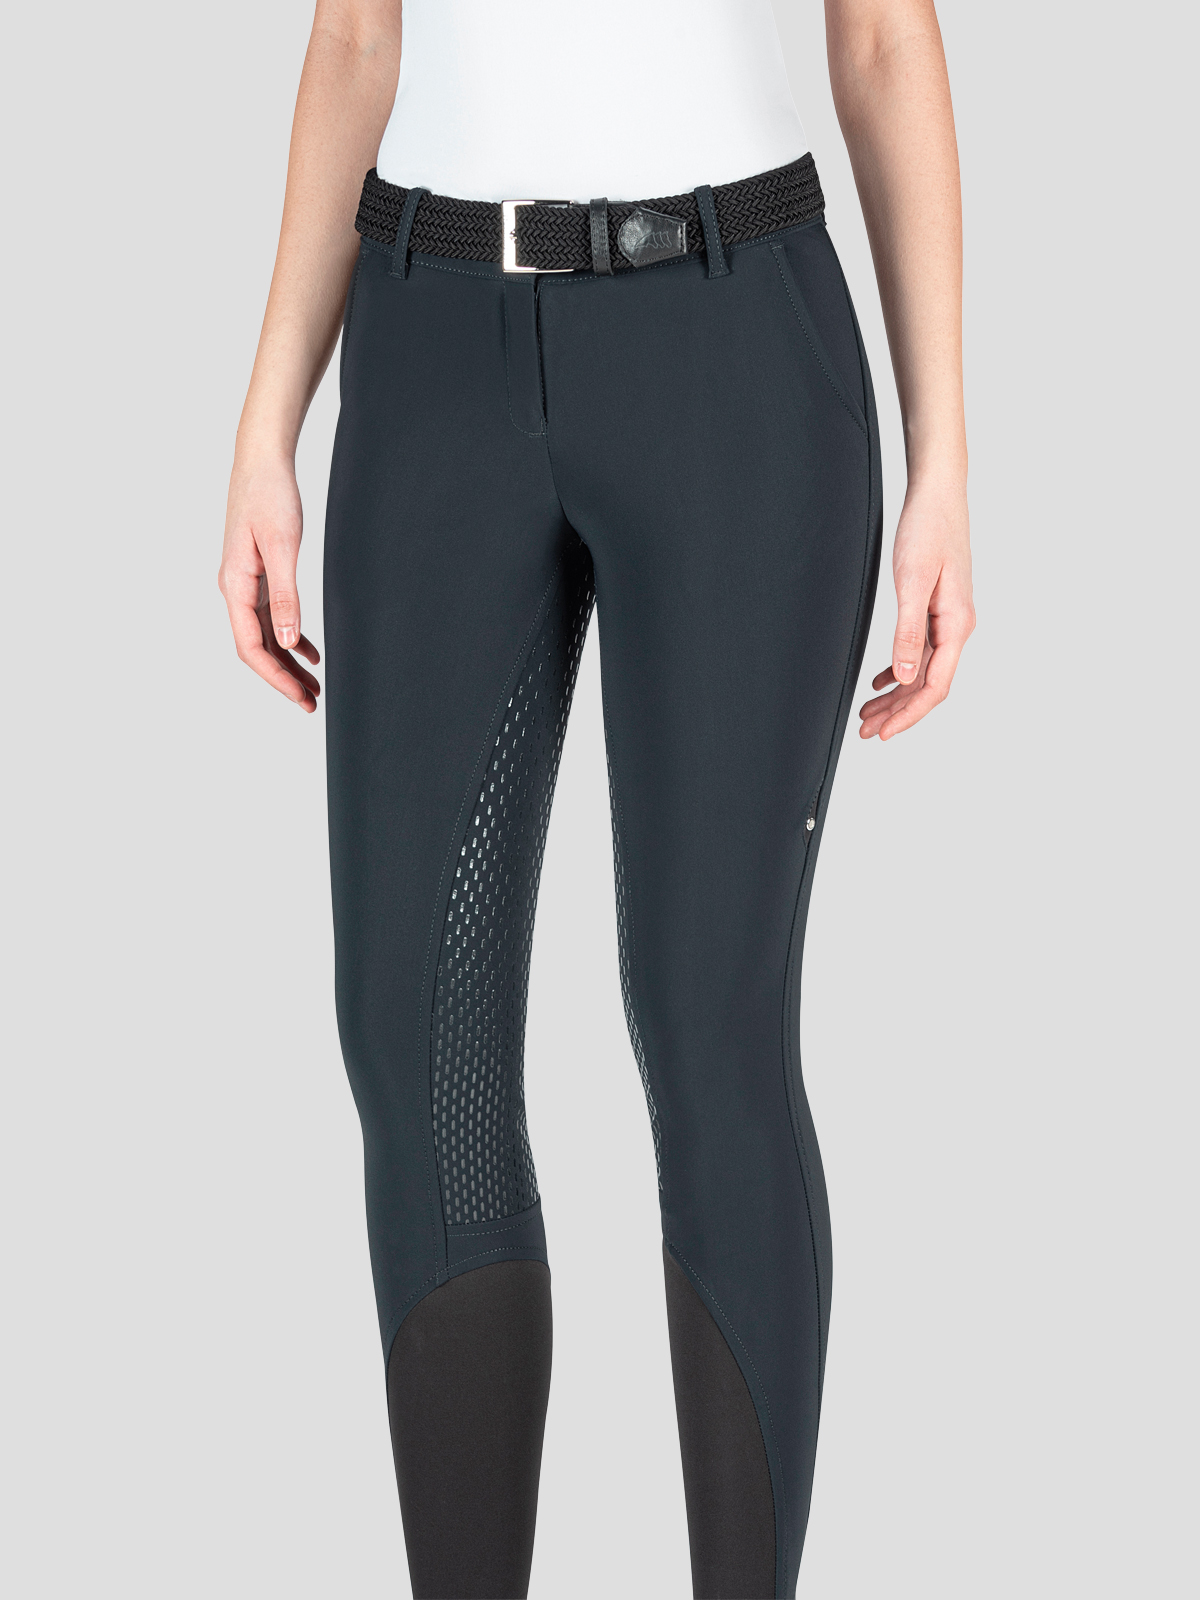 JULIK WOMEN'S FULL GRIP RIDING BREECHES IN B-MOVE FABRIC 6